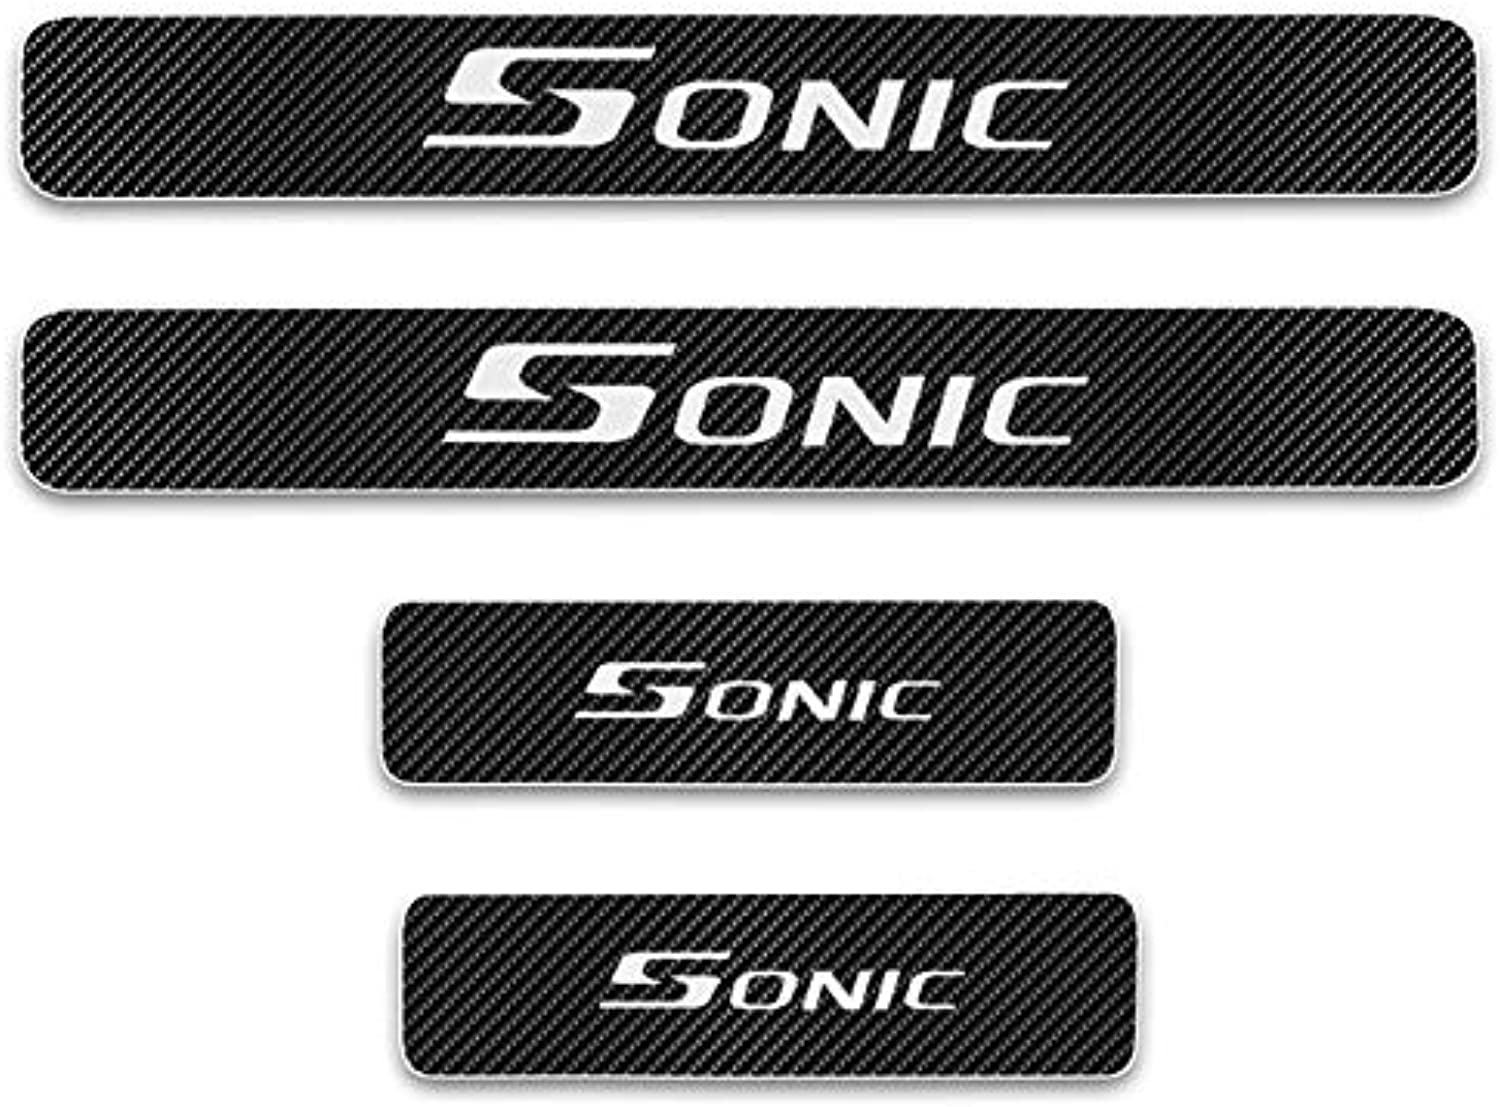 For Chevrolet Sonic Door Threshold Plate Door Entry Guard Car Door Sills Door Sill Scuff Plate CarStyling Accessories 4Pcs  (color Name  White)